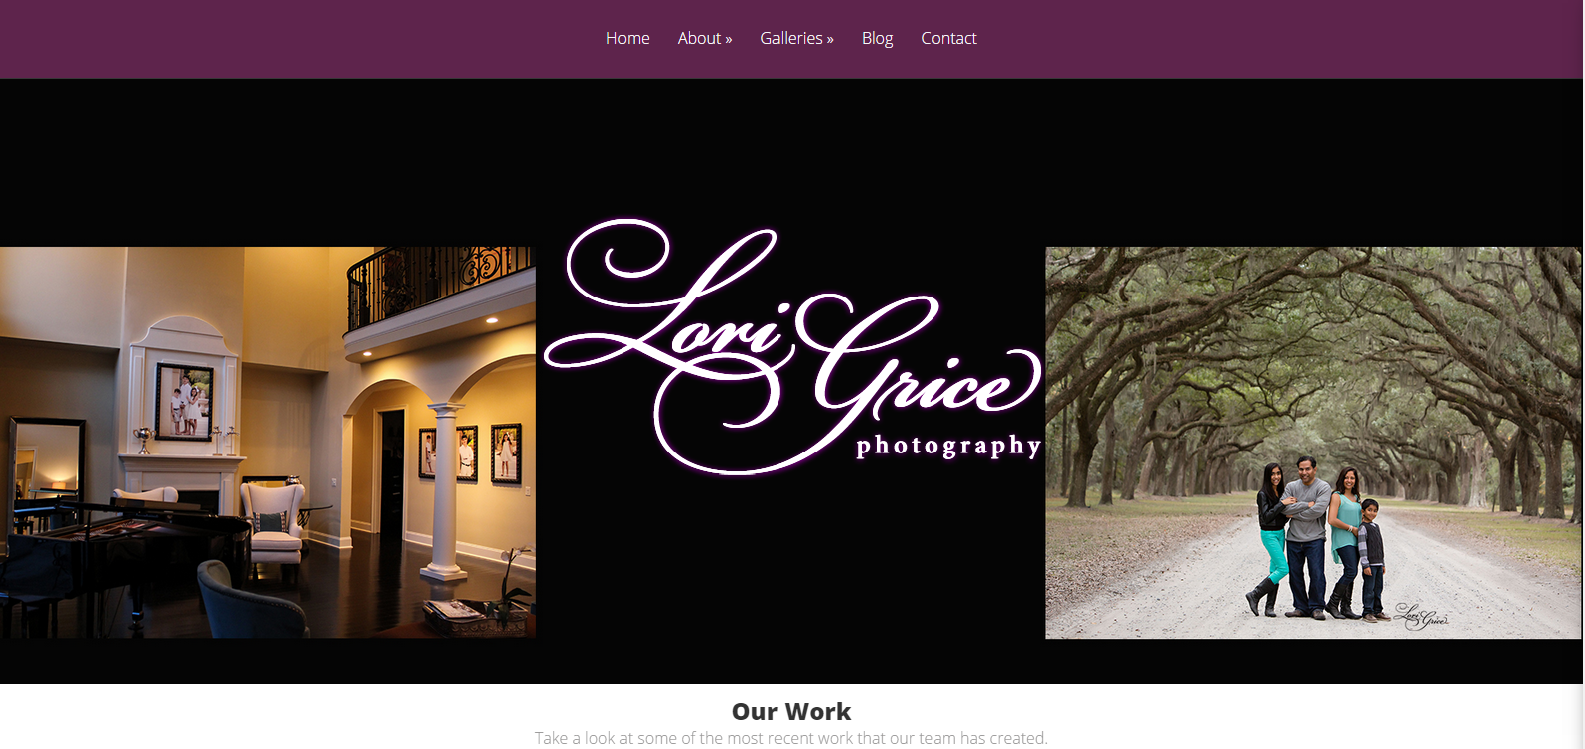 Lori Grice Photography